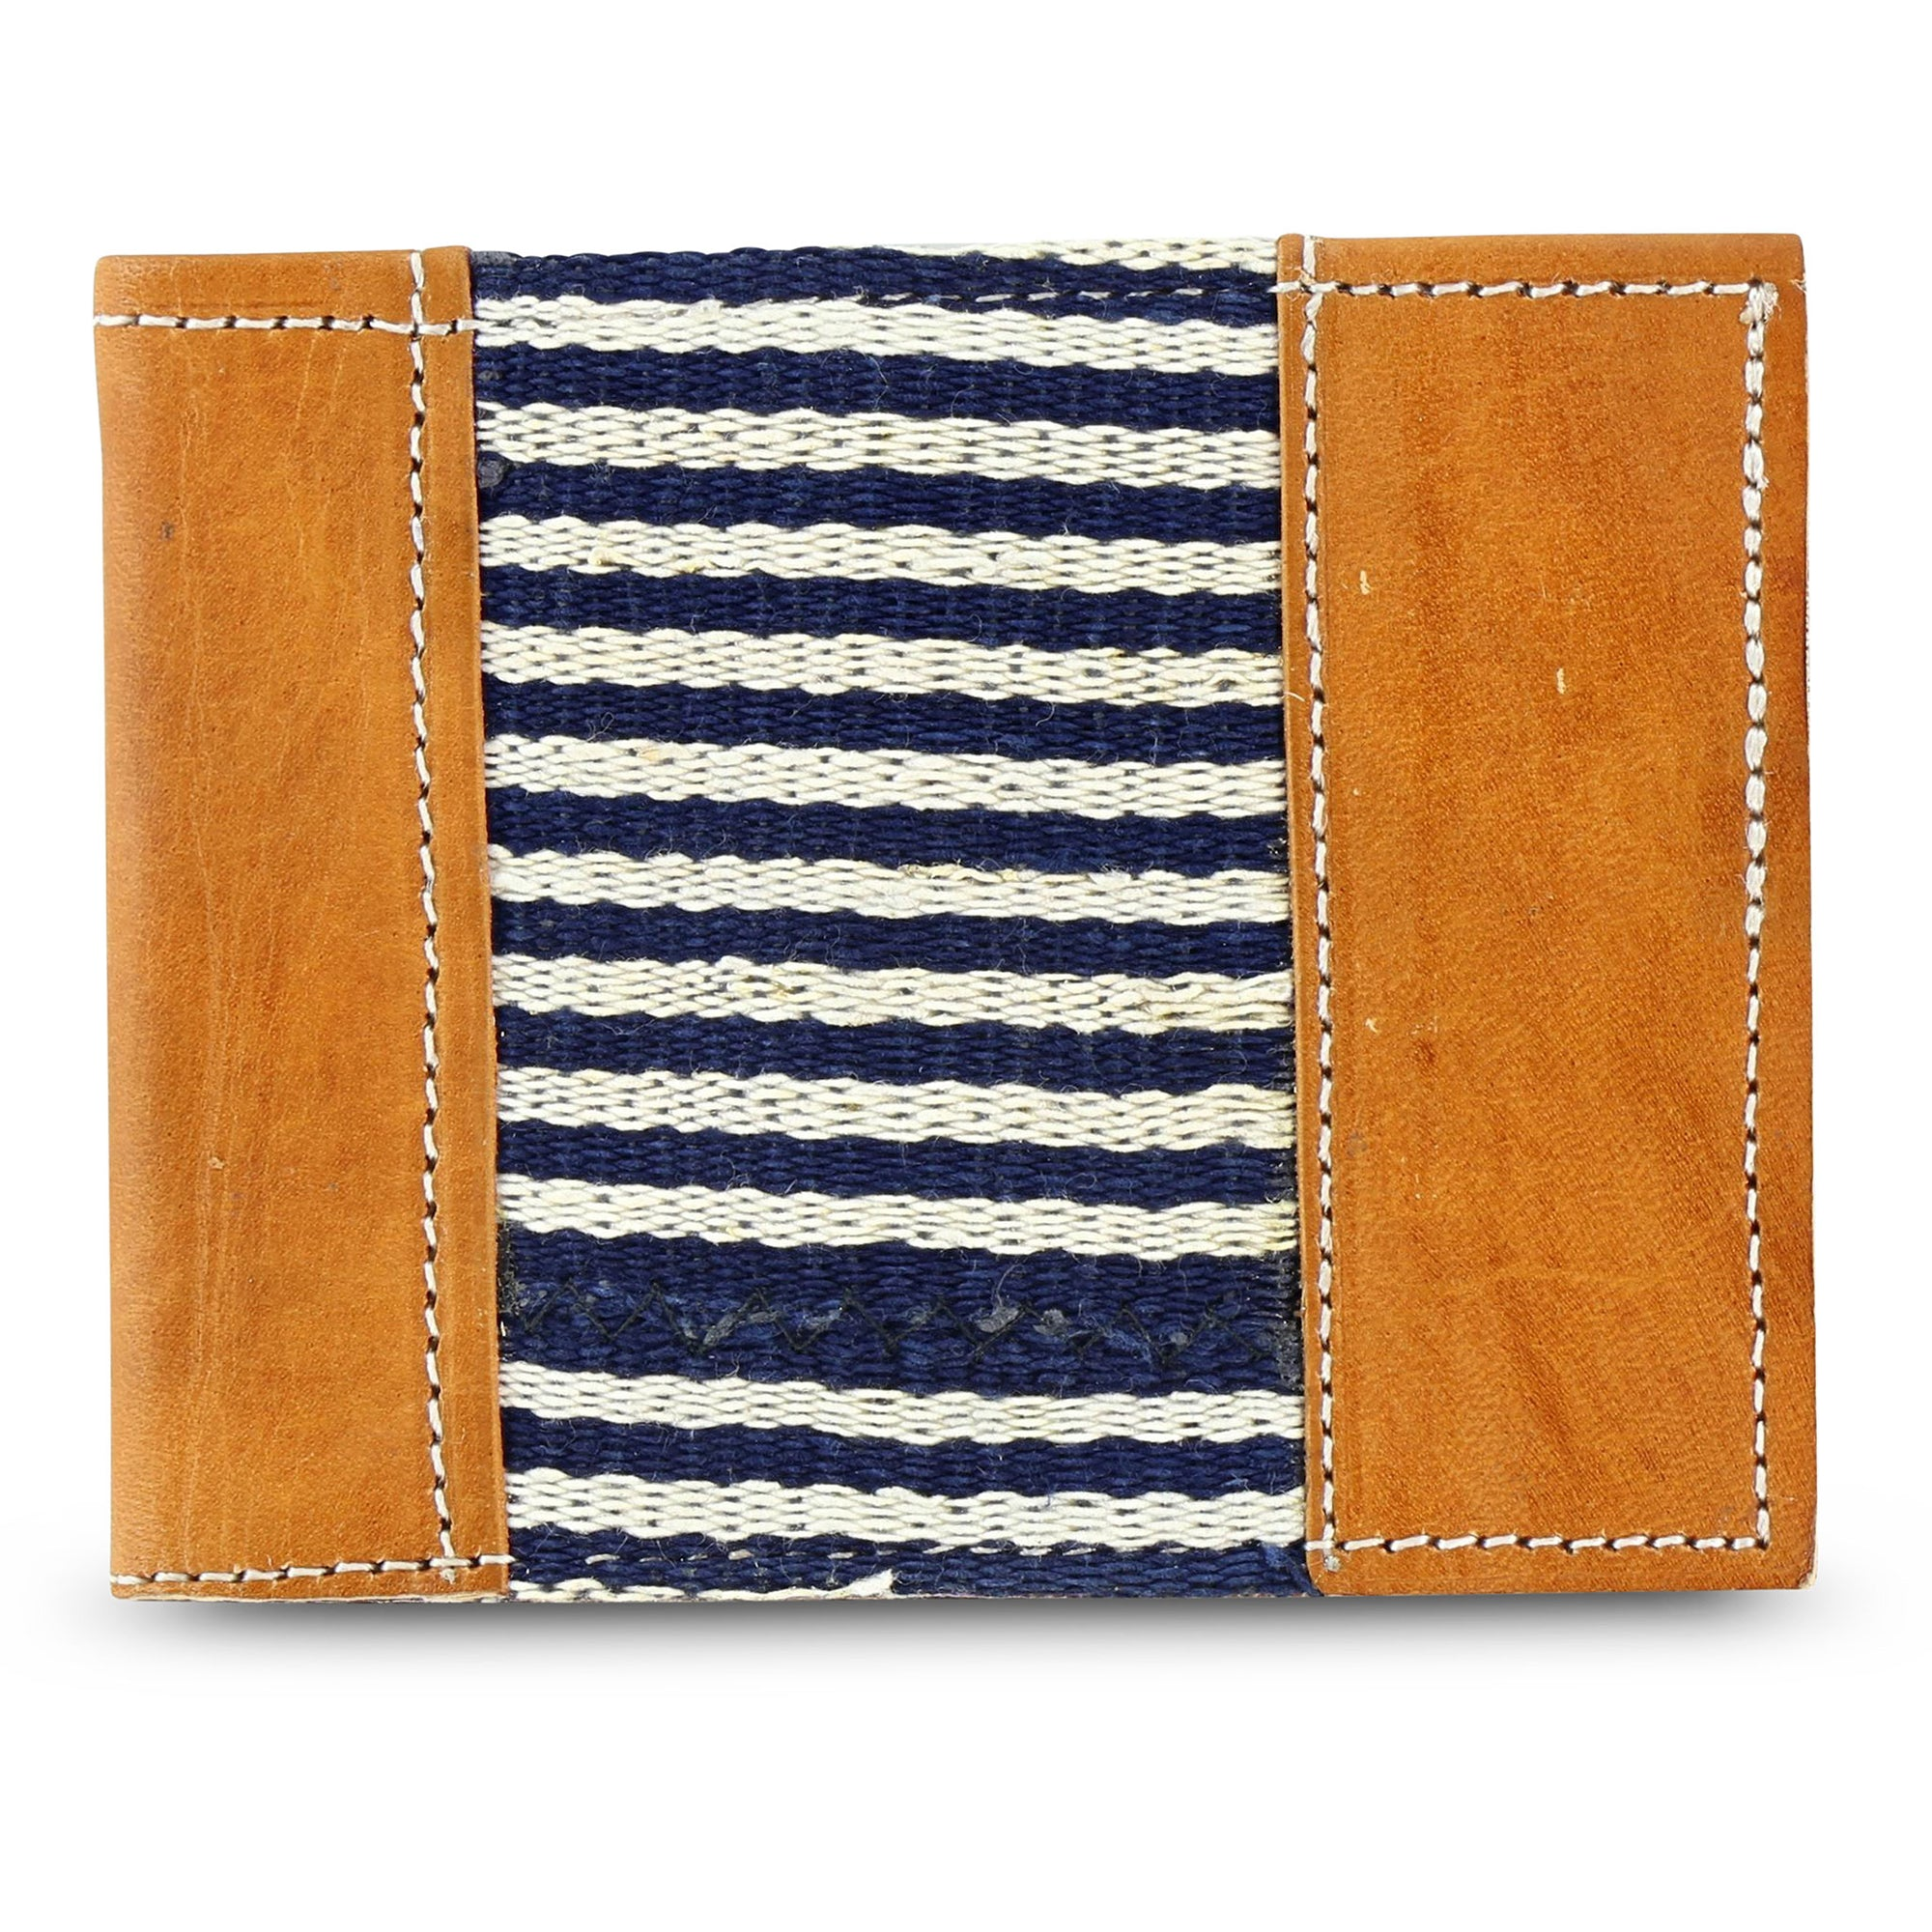 Country Cloth Bifold Wallet: Narrow Indigo